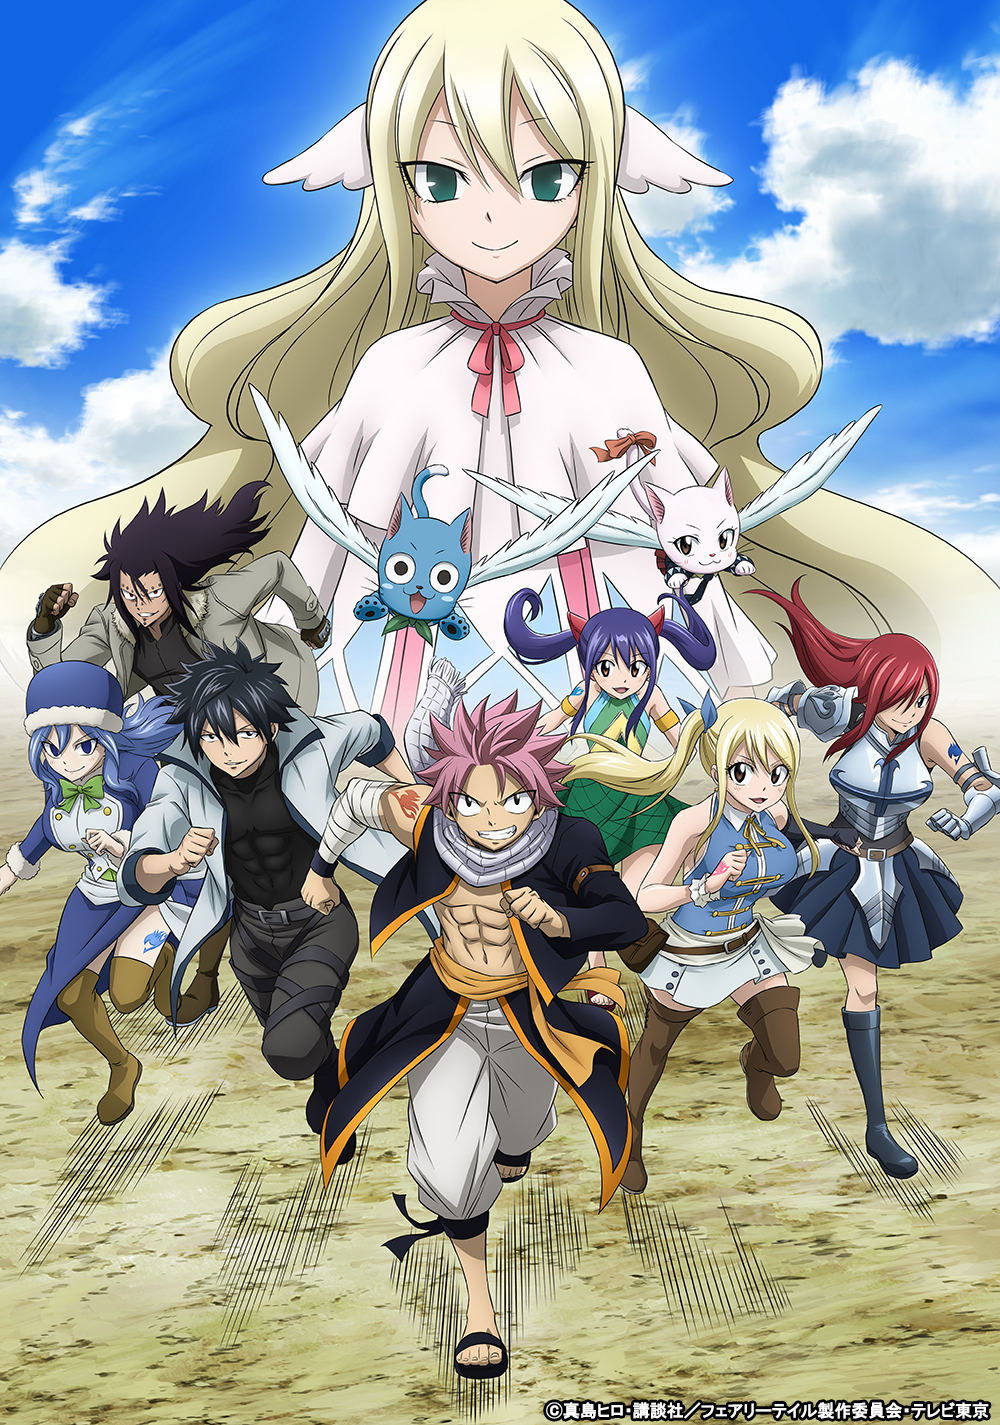 Six member pop rock idol girl group osaka shunkashuto will perform the third opening theme for the final season of the tv anime series fairy tail set to